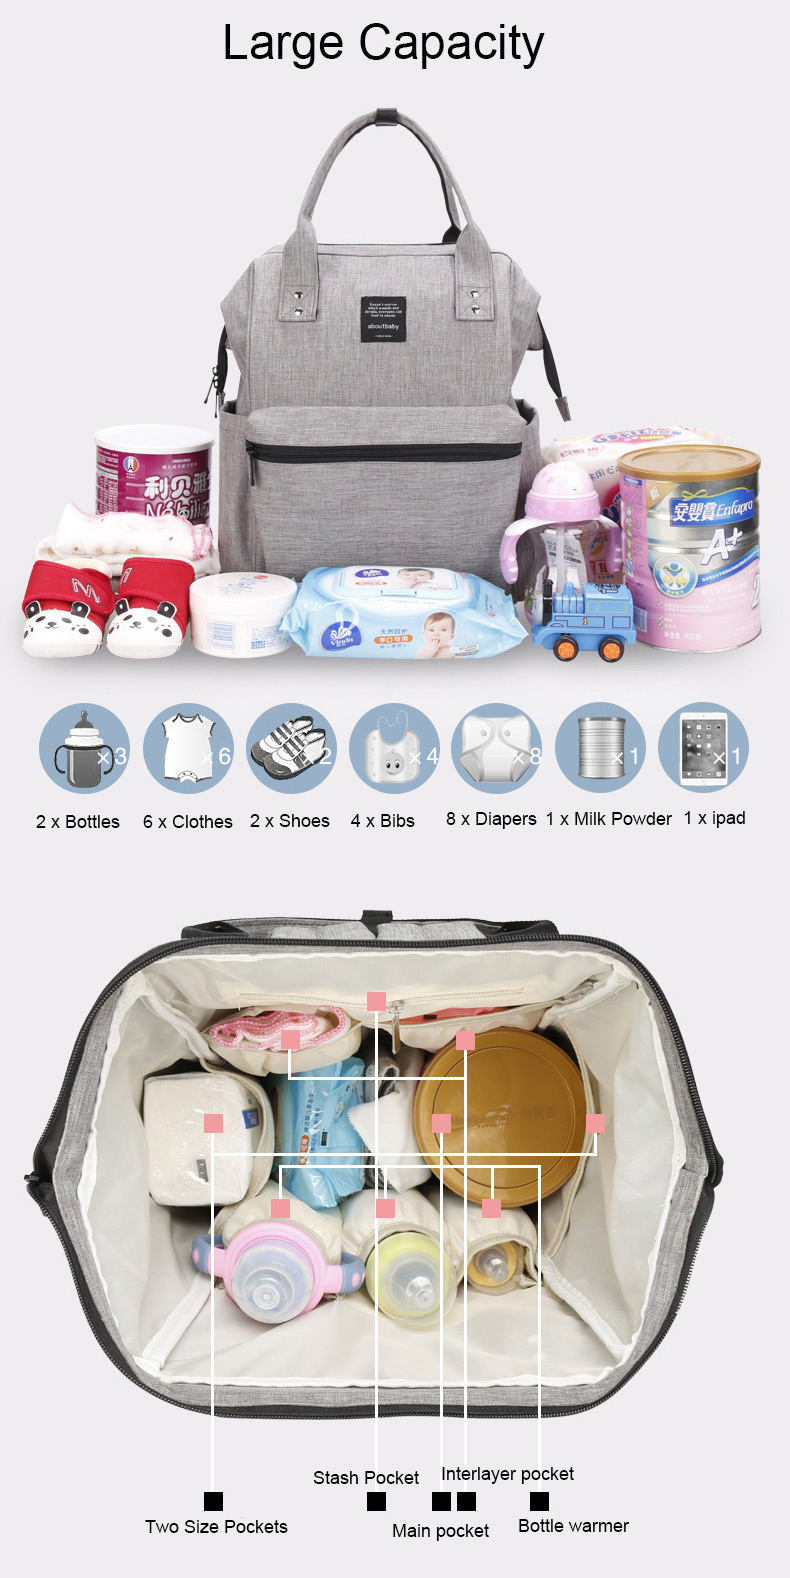 Vvcare BC-MB01 Large Capacity Diaper Nappy Mummy Bag Tote Maternity Baby Care Travel Backpack Nursing Bag